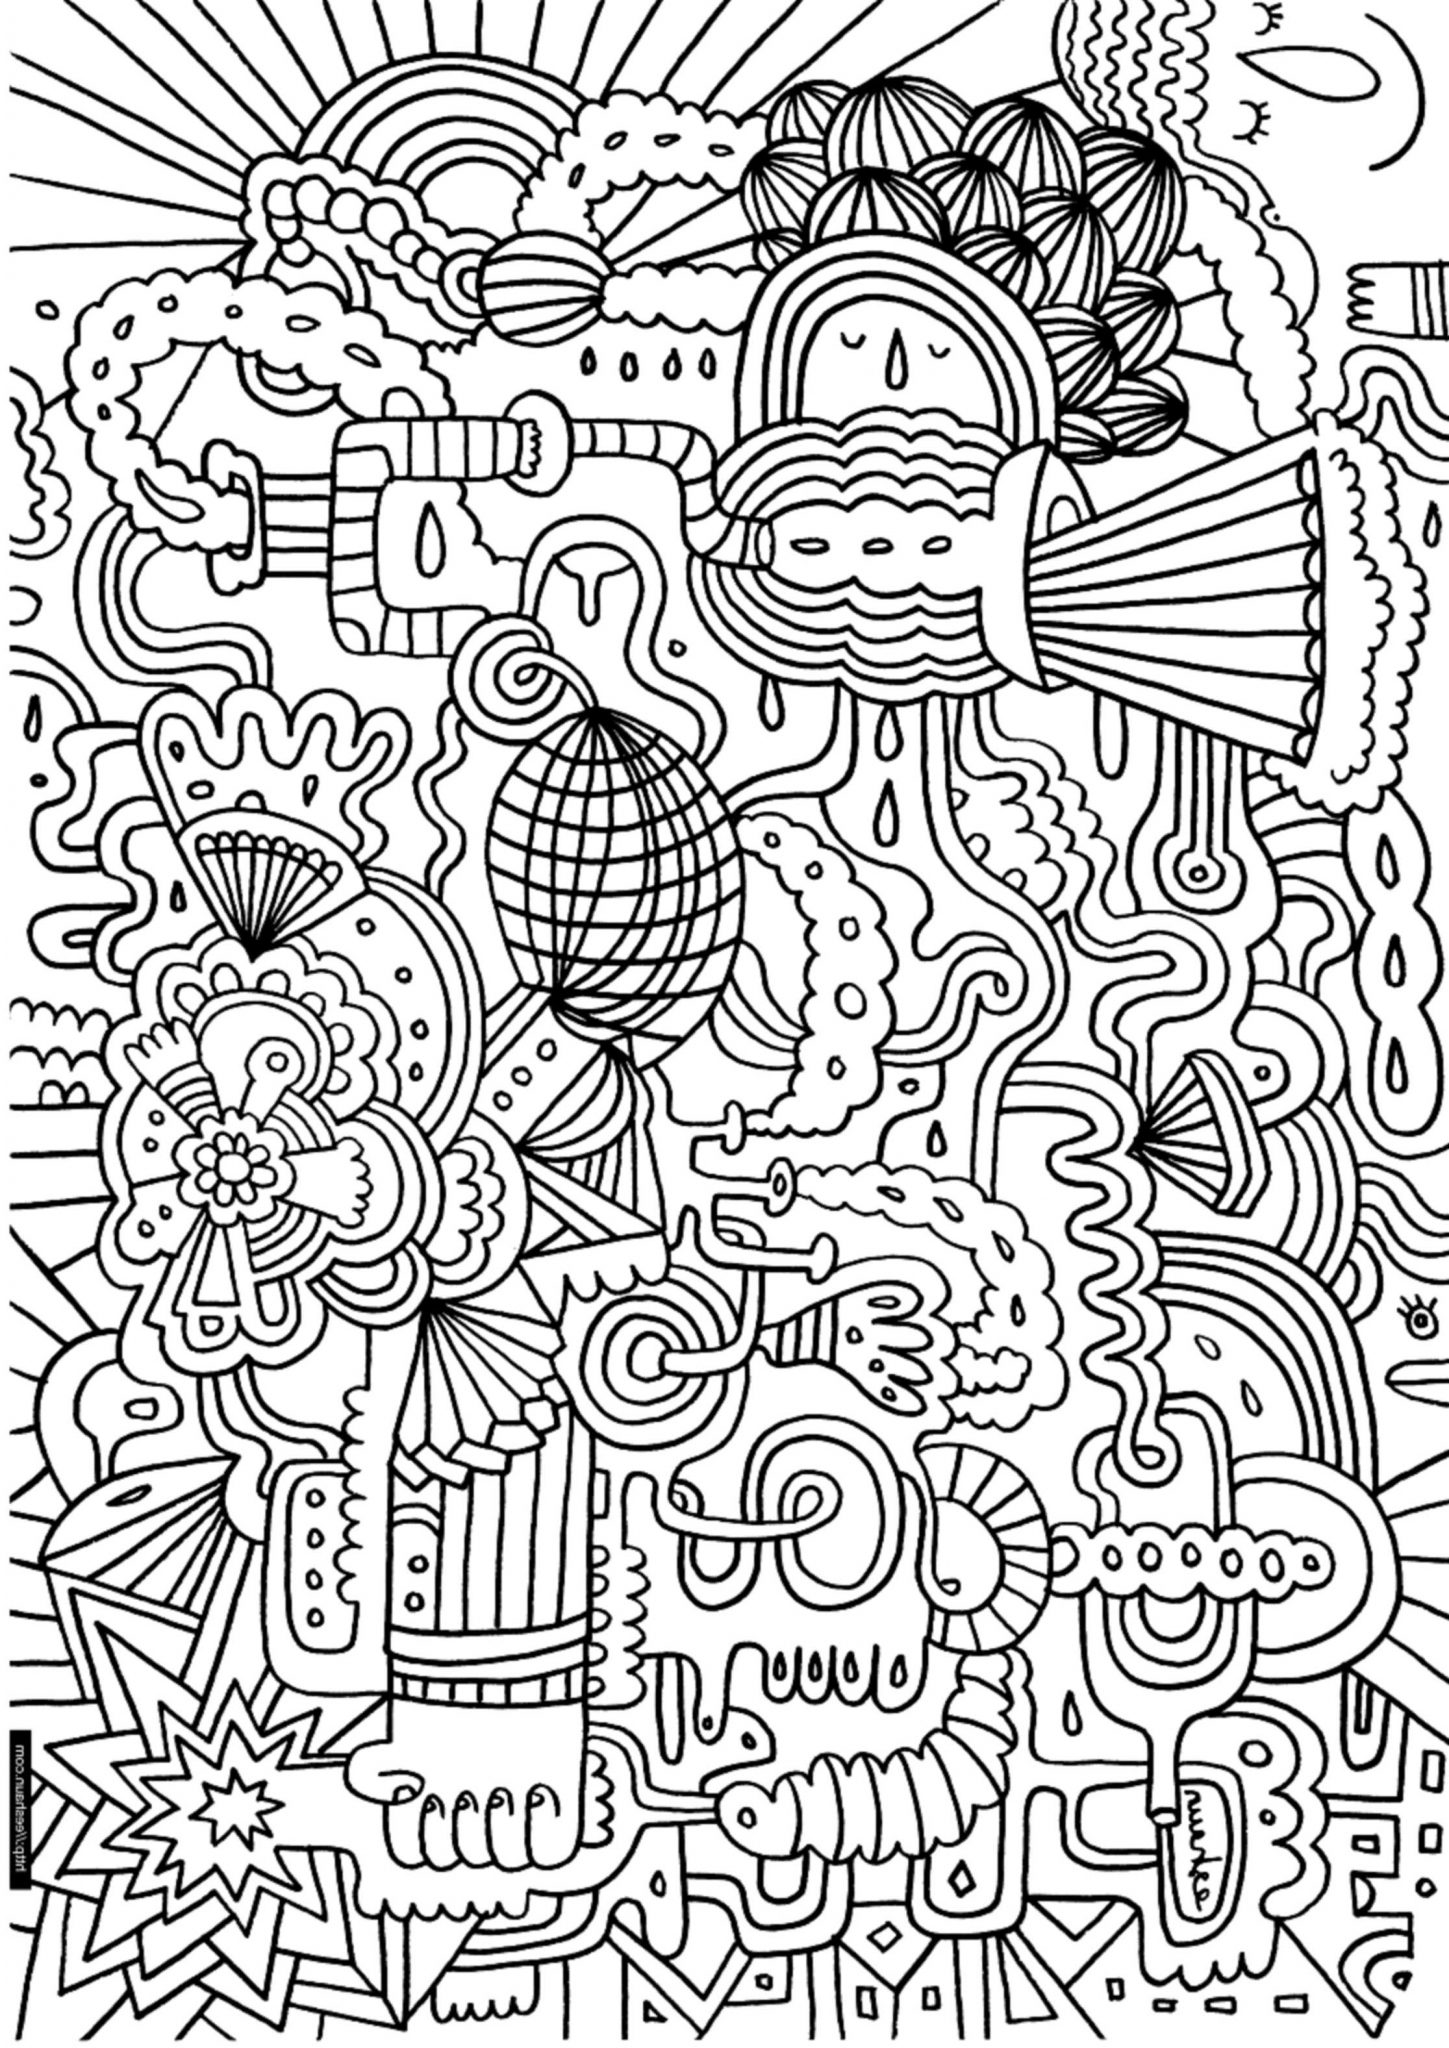 complex coloring sheets complex coloring pages for teens and adults best sheets complex coloring